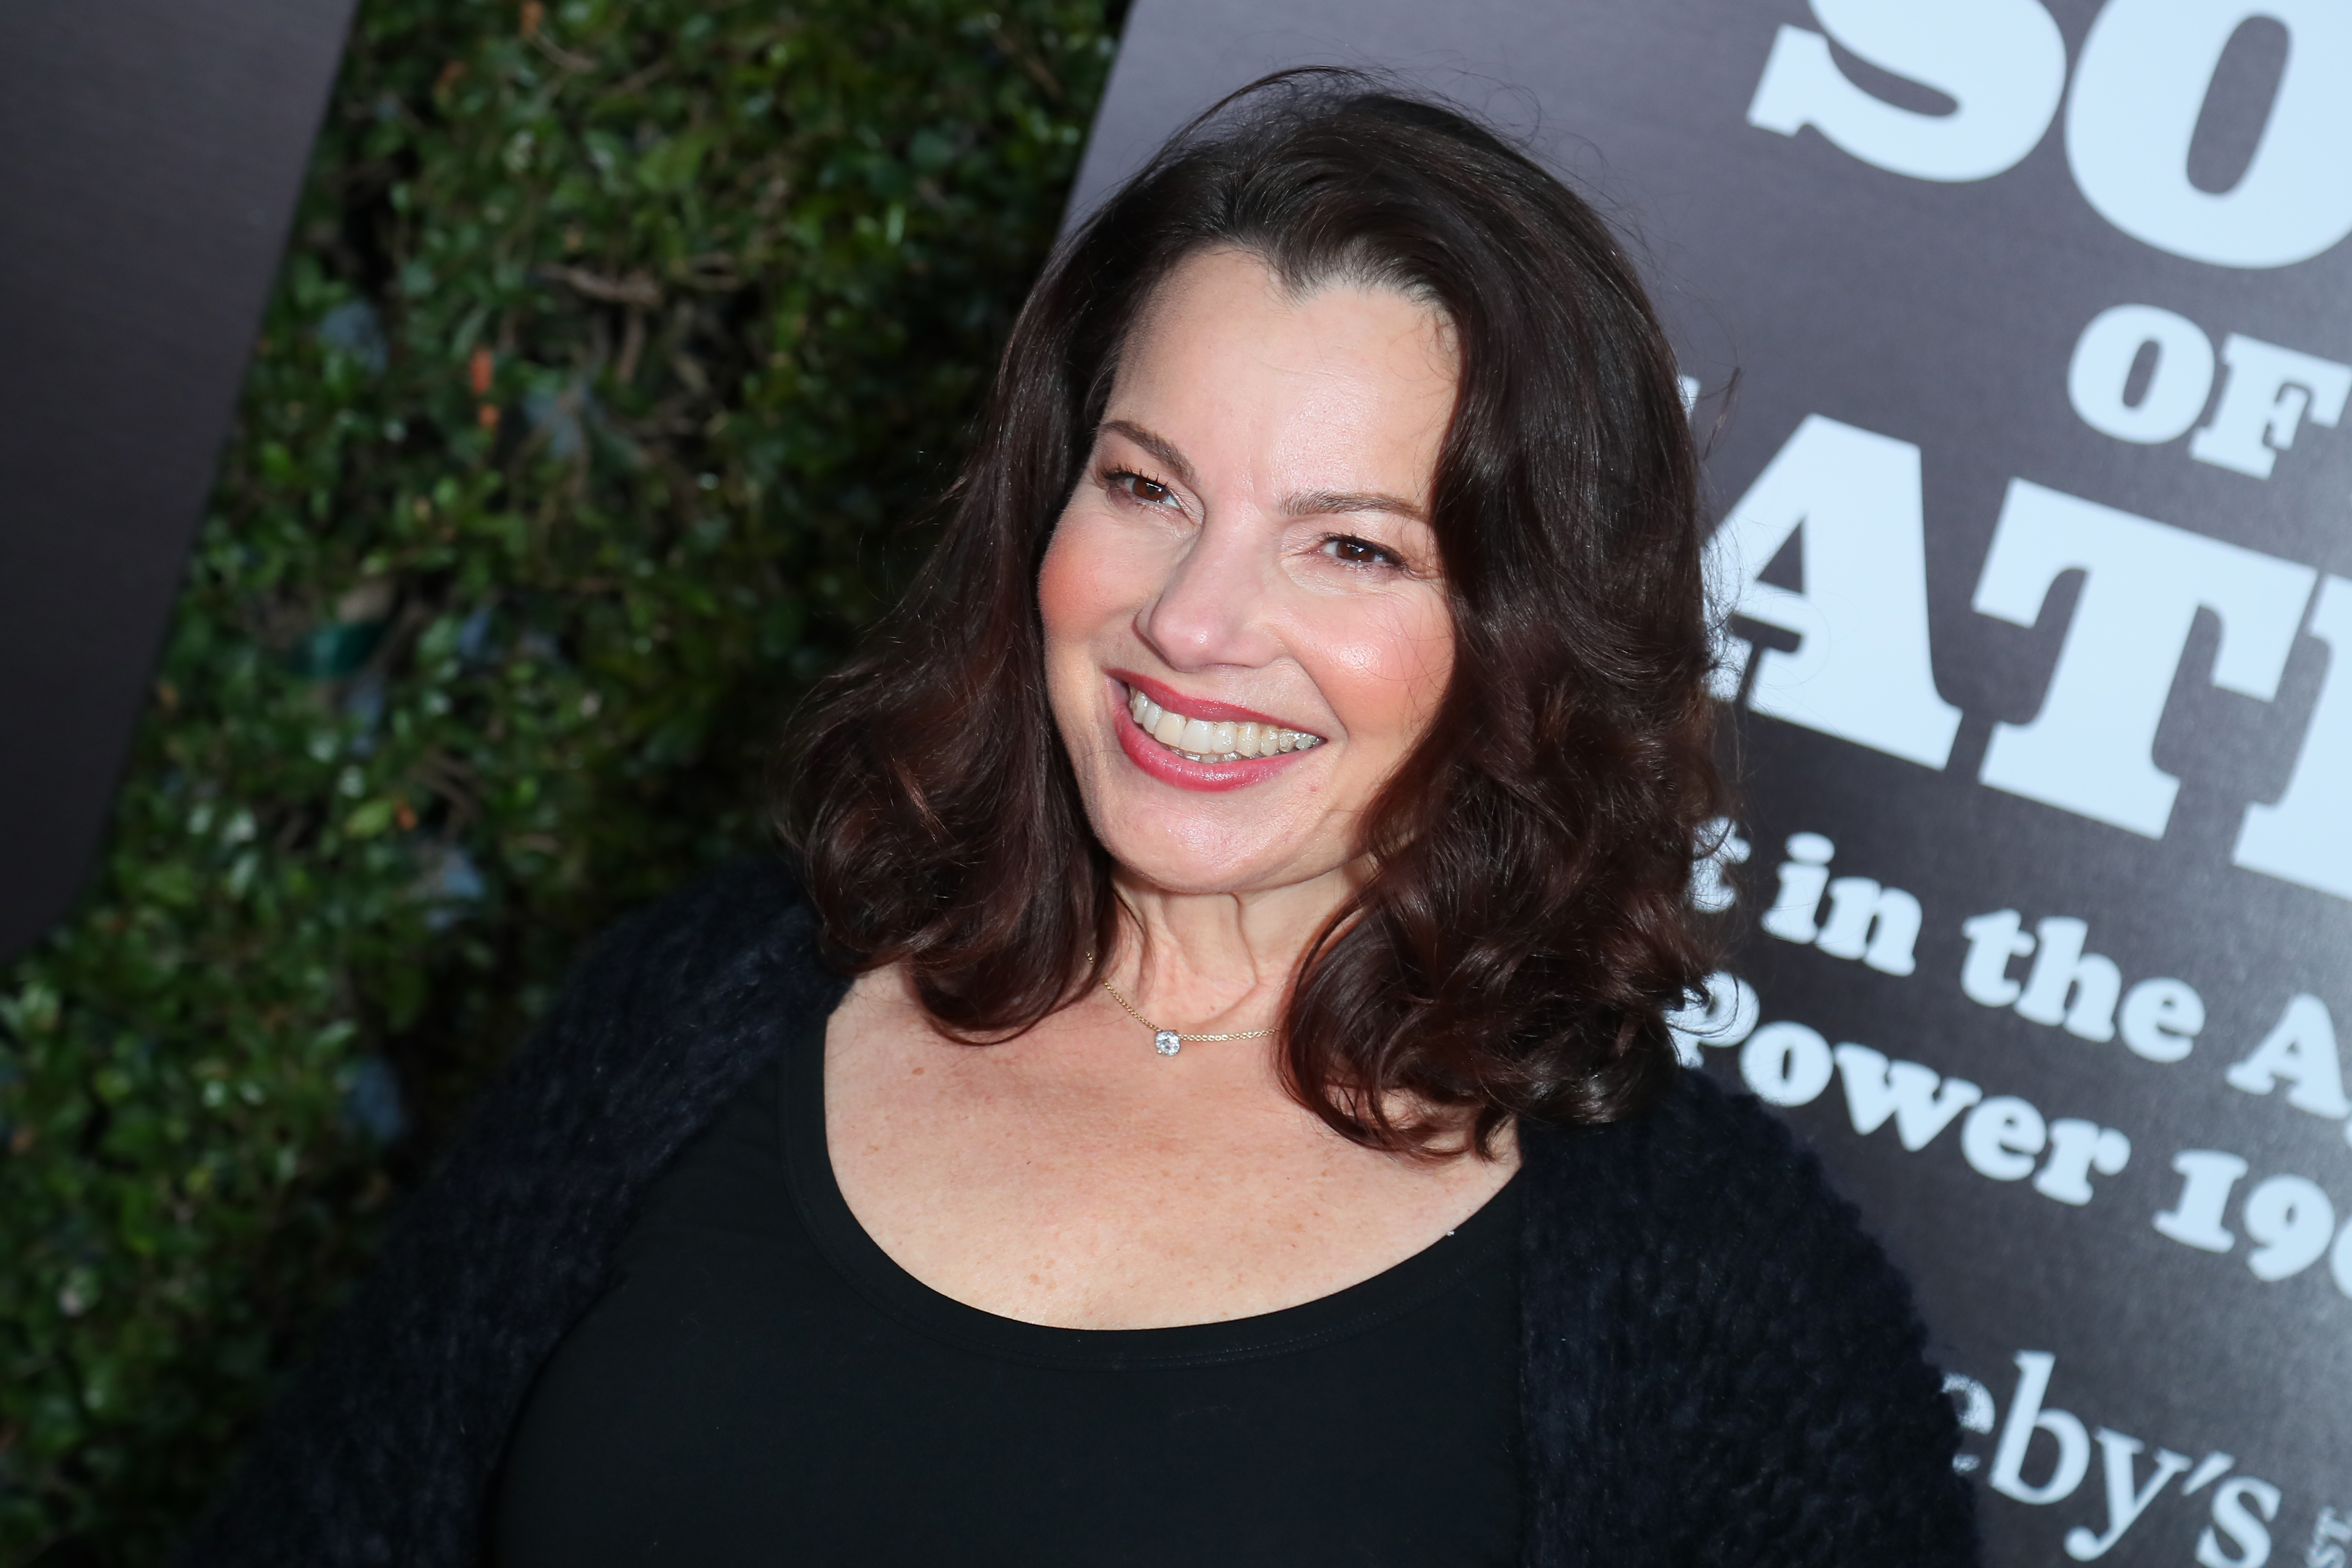 """Fran Drescher attends The Broad Hosts West Coast Debut Of """"Soul Of A Nation: Art In the Age Of Black Power 1963-1983"""" at The Broad on March 22, 2019 in Los Angeles, California."""